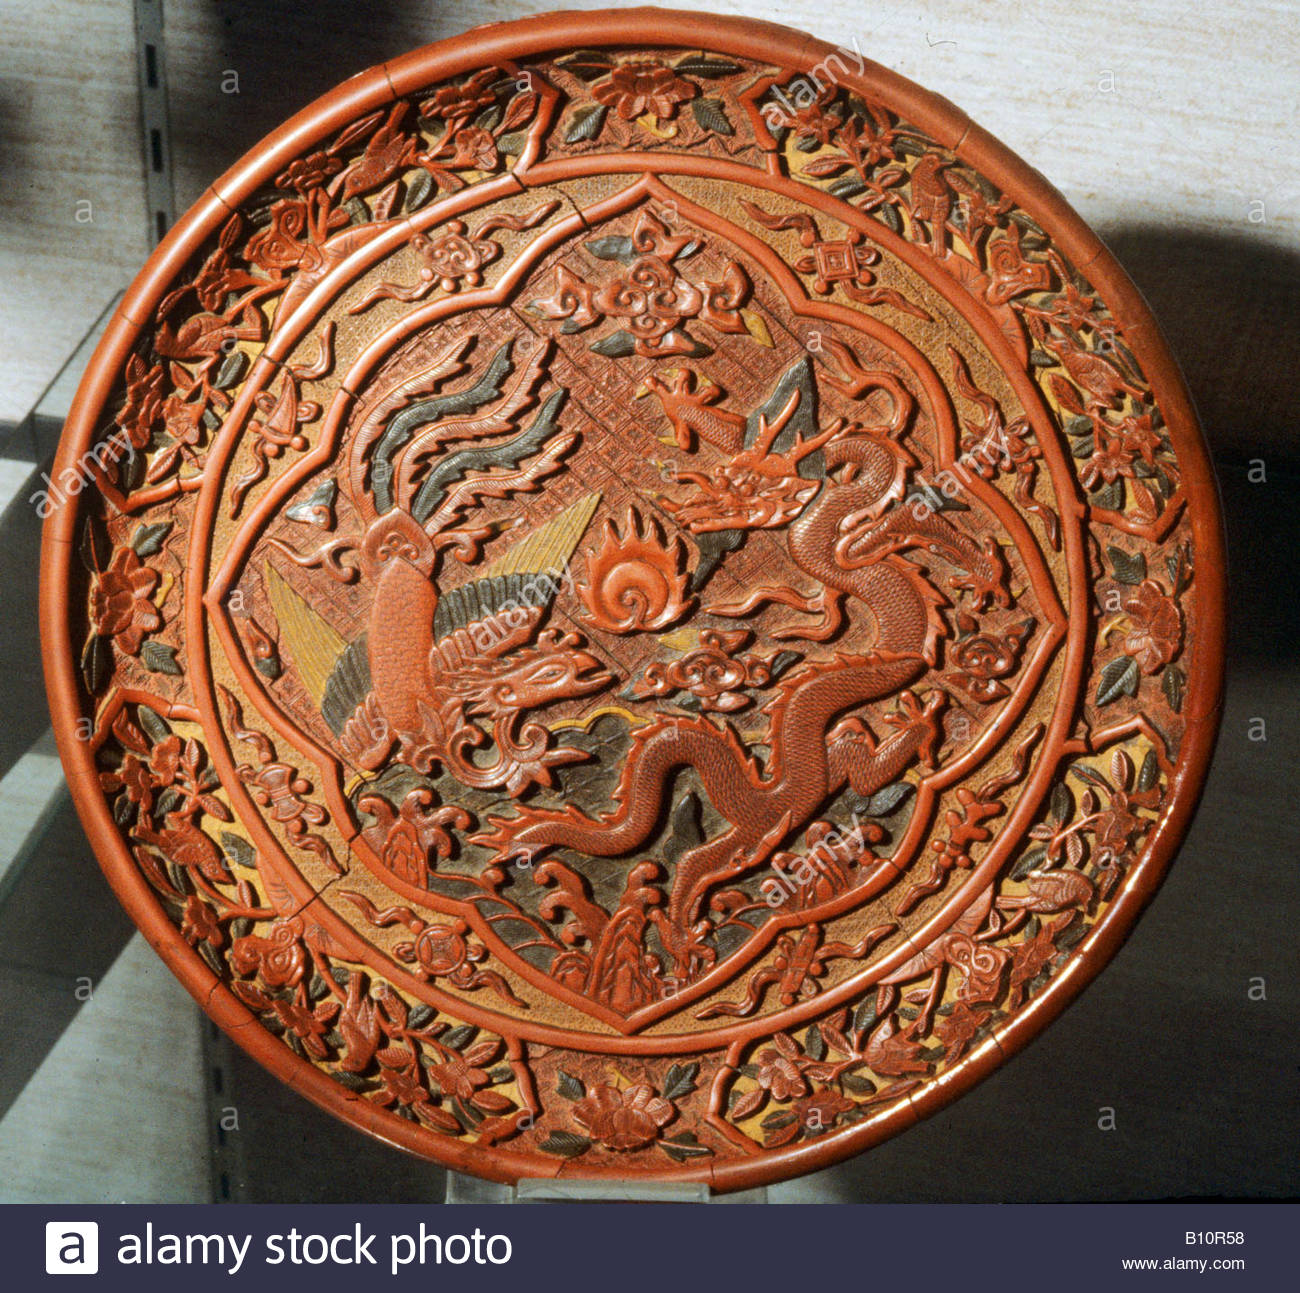 Ming Dynasty laquered dish with dragon and phoenix 15th c China AAAC Ltd - Stock Image